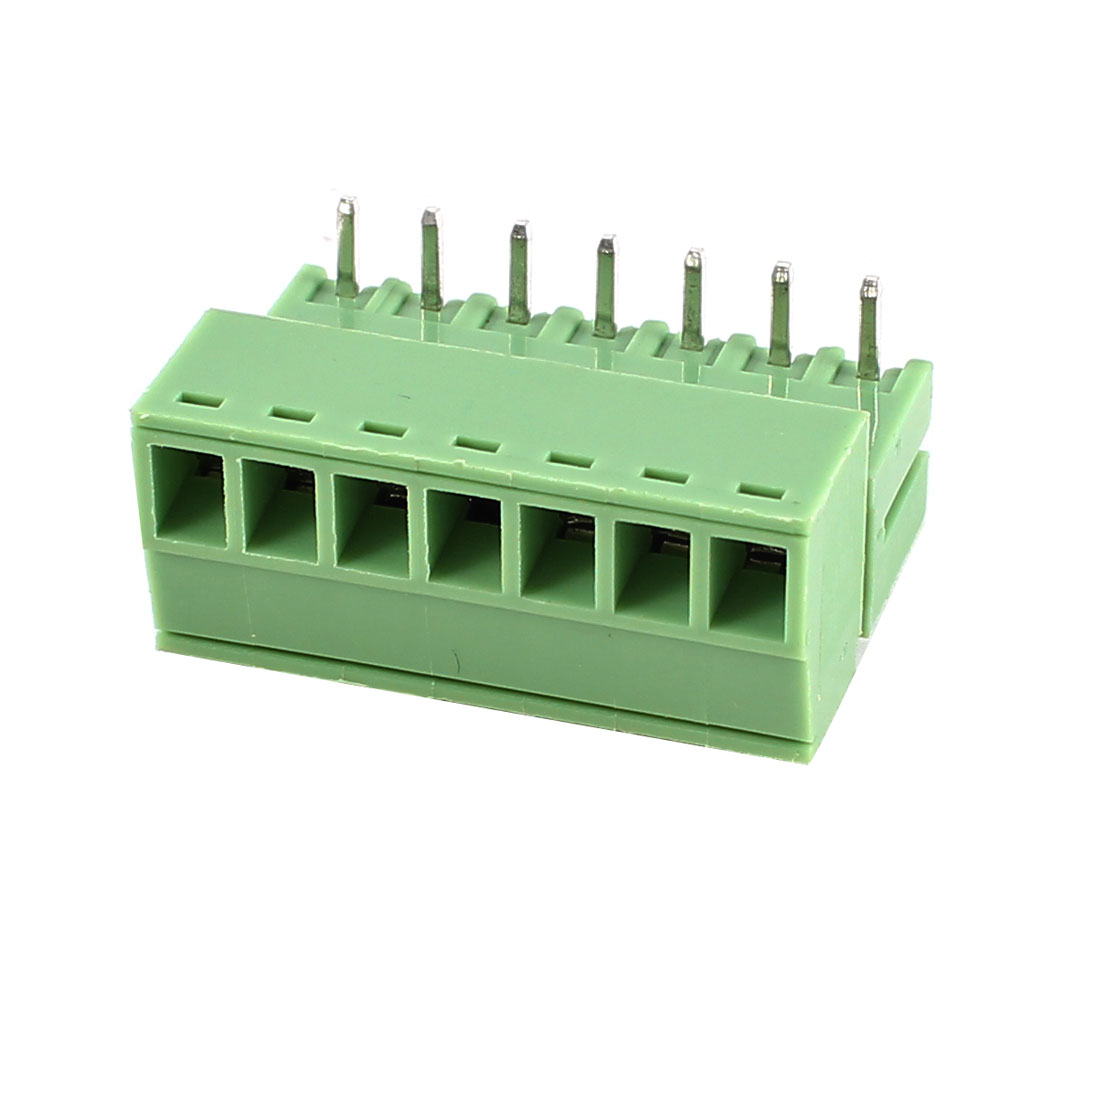 Green 7Pin 3.5mm Spacing PCB Screw Terminal Block Connector 300V 8A AWG22-16